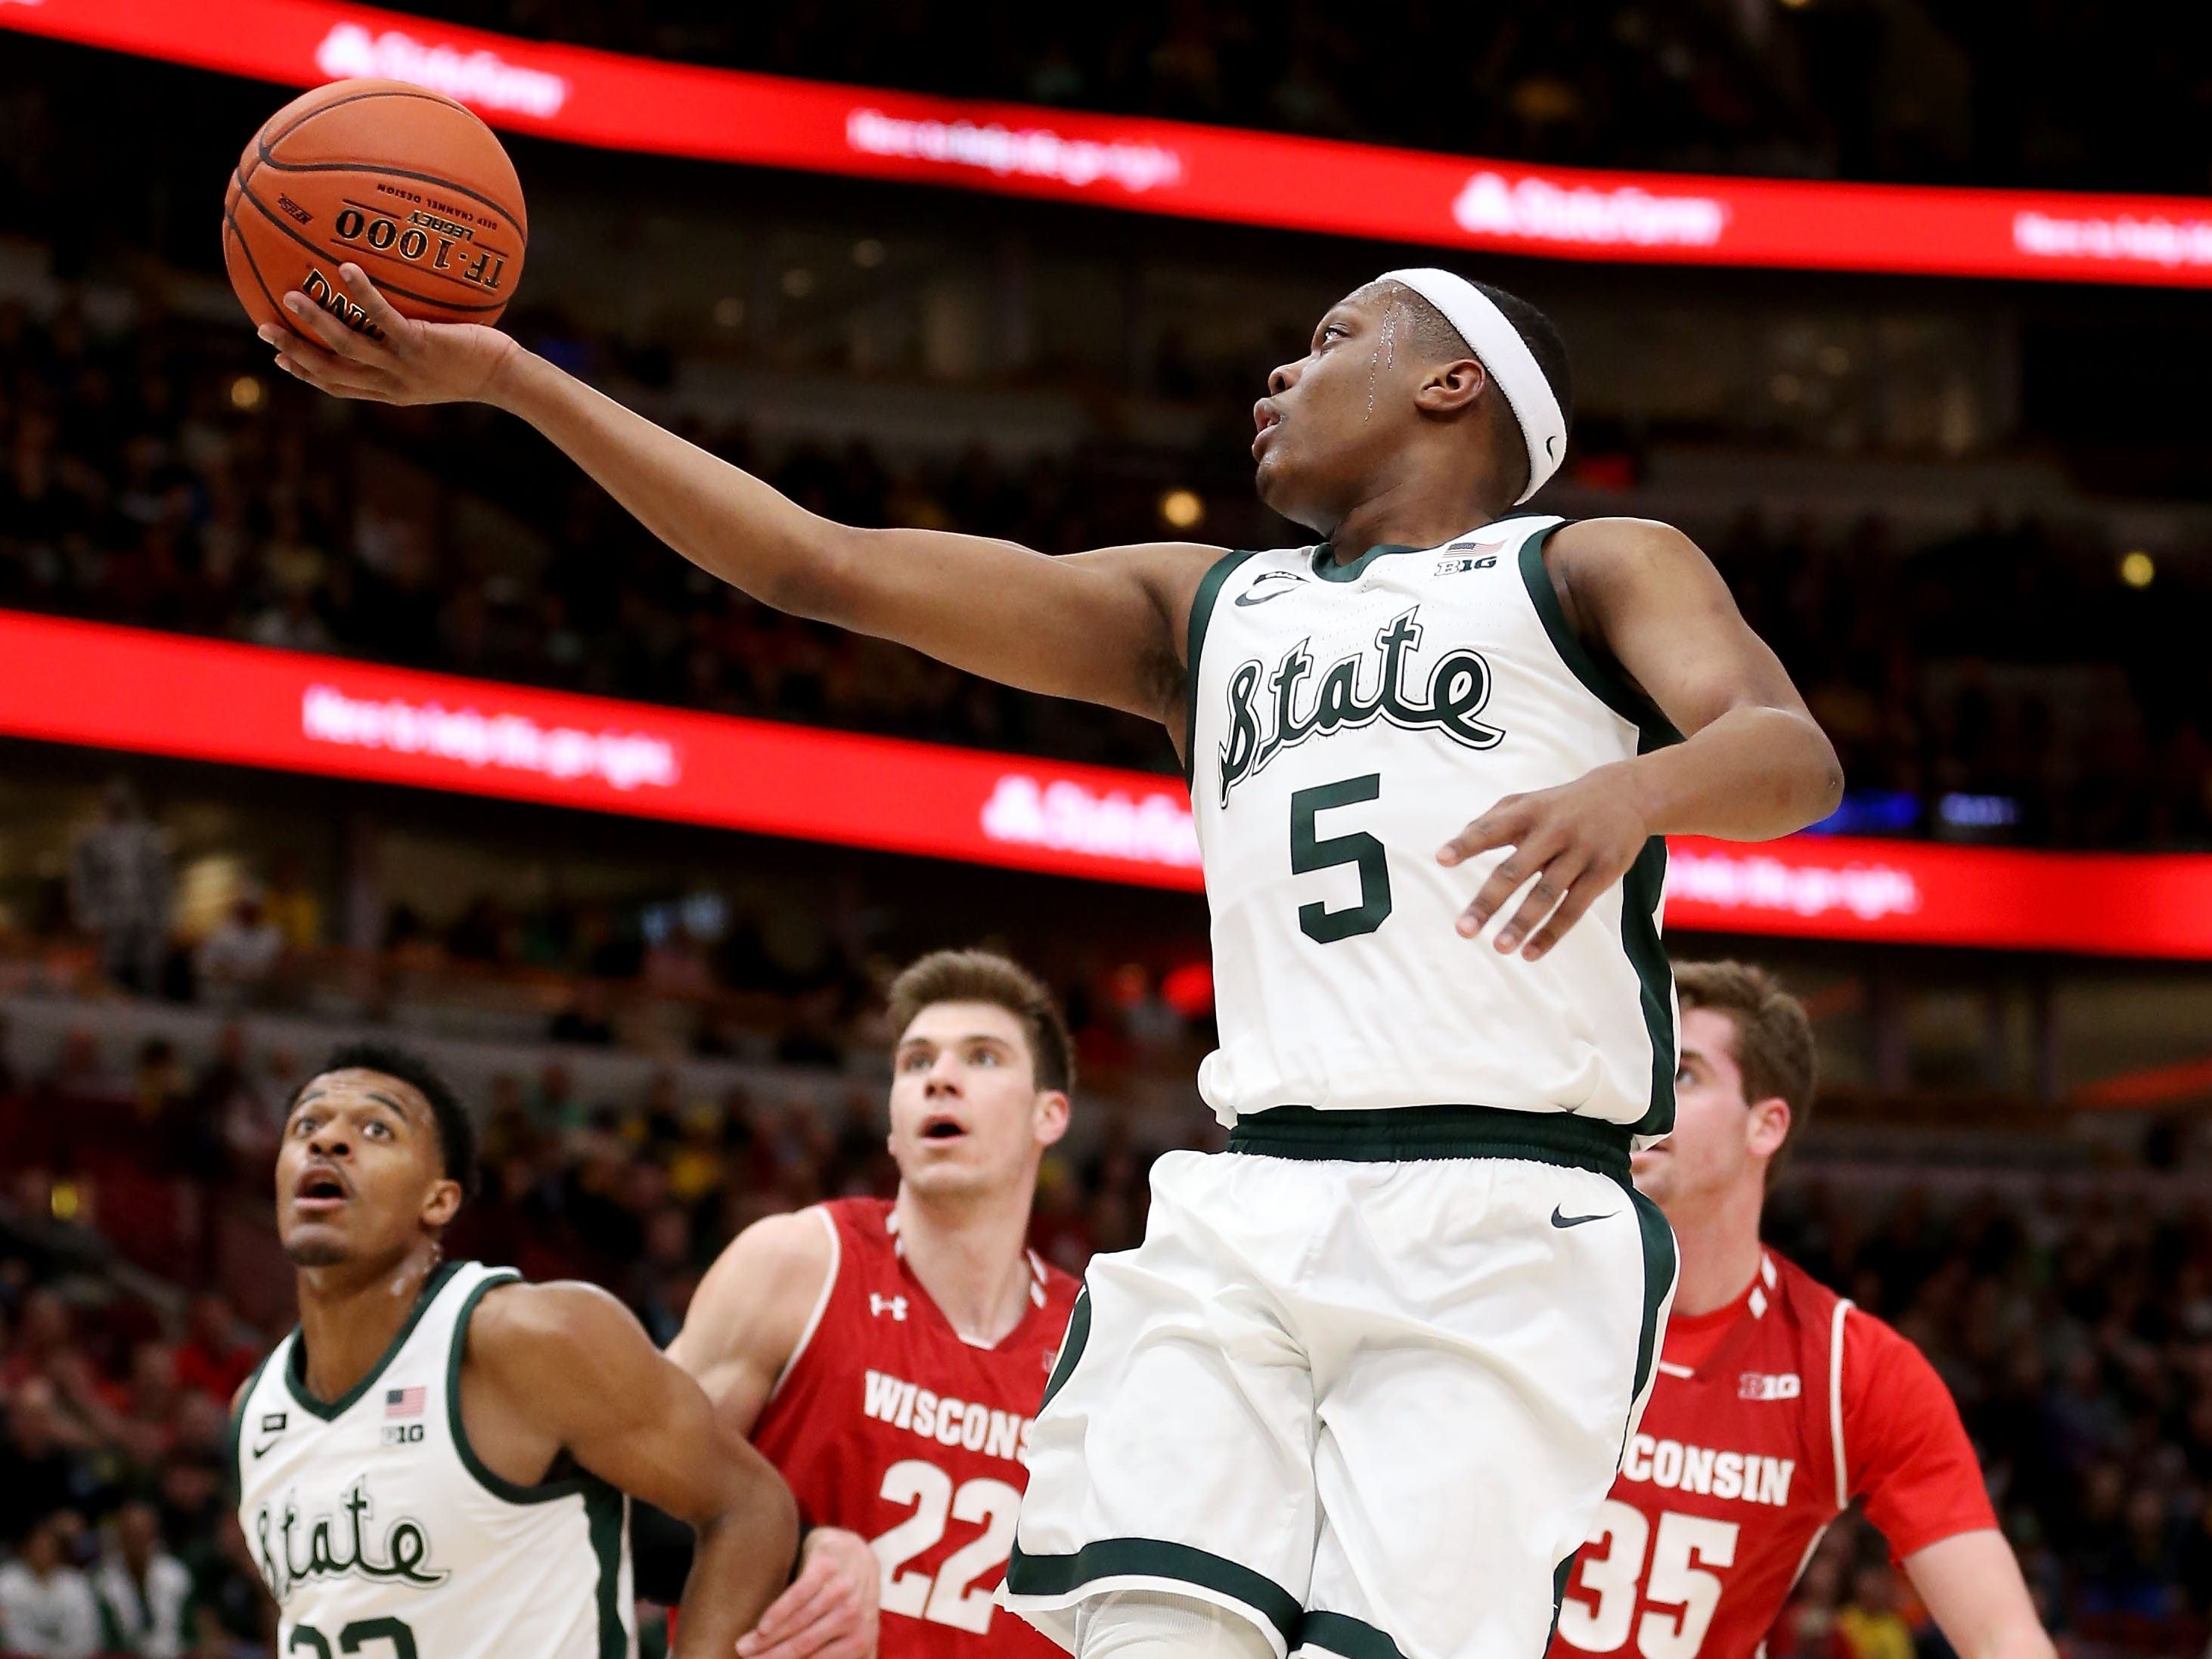 Cassius Winston #5 of the Michigan State Spartans attempts a shot in the first half against the Wisconsin Badgers during the semifinals of the Big Ten Basketball Tournament at the United Center on March 16, 2019 in Chicago, Illinois.